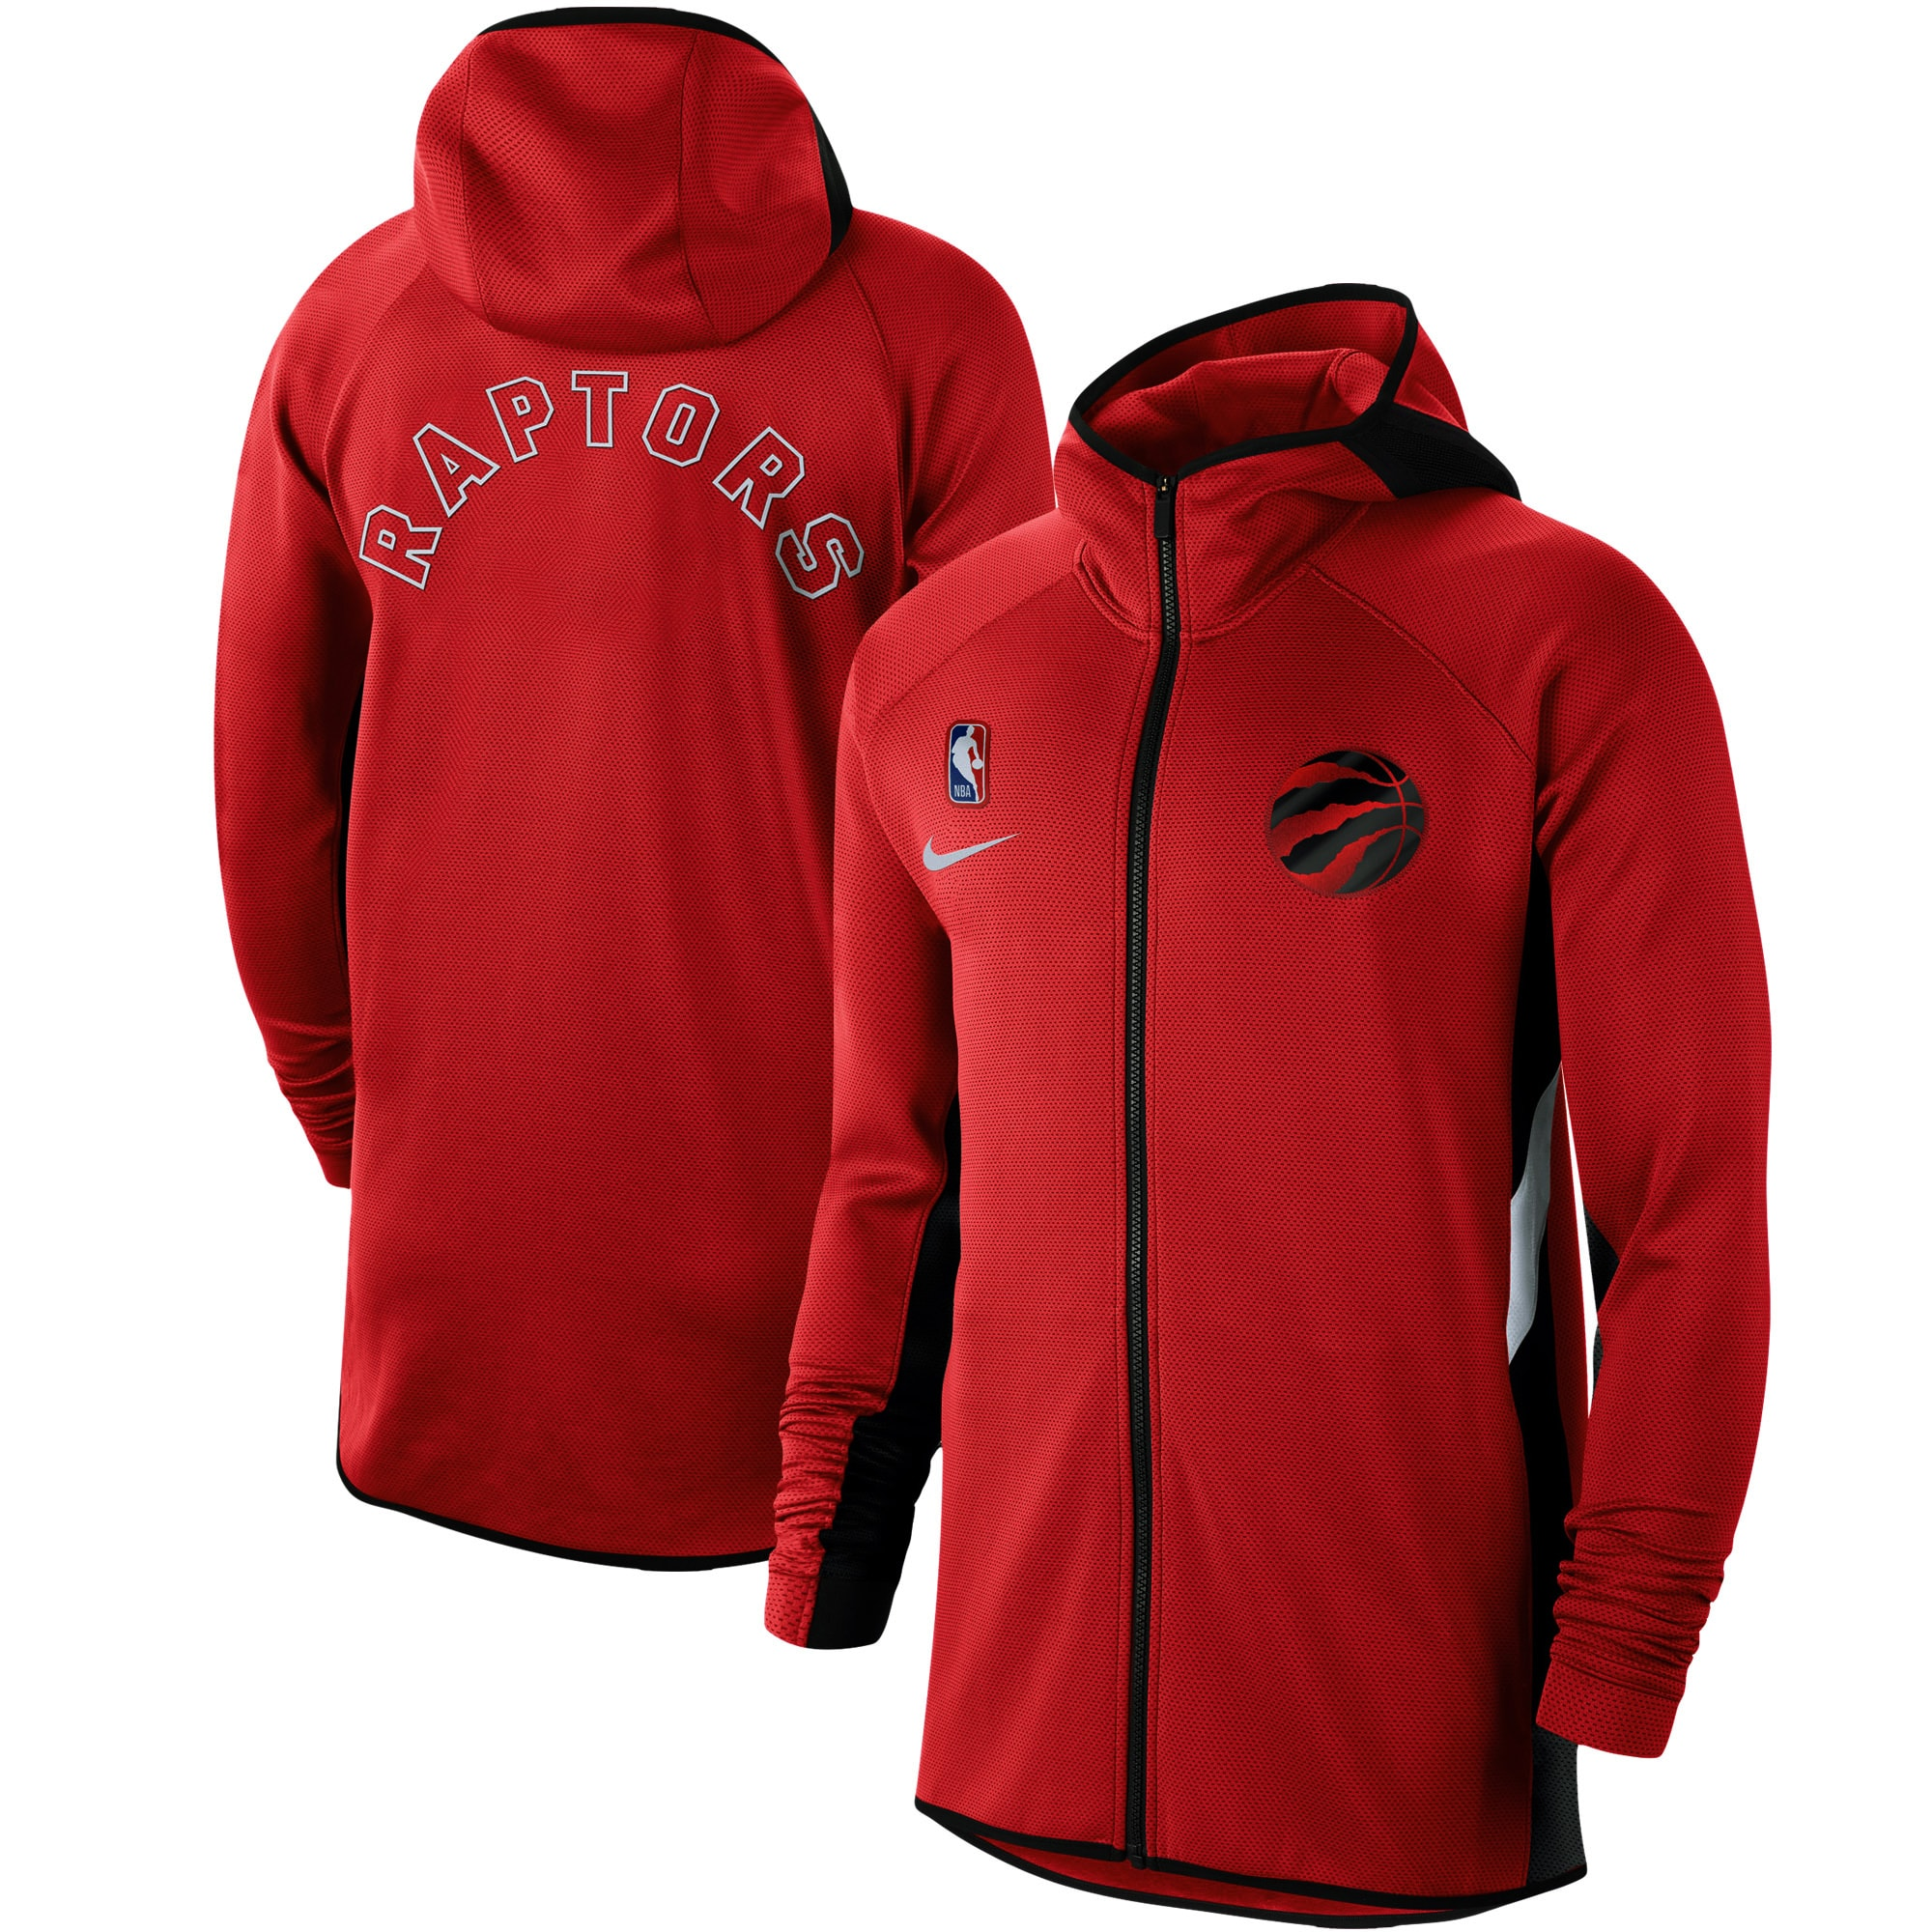 Toronto Raptors Nike Authentic Showtime Therma Flex Performance Full-Zip Hoodie - Red